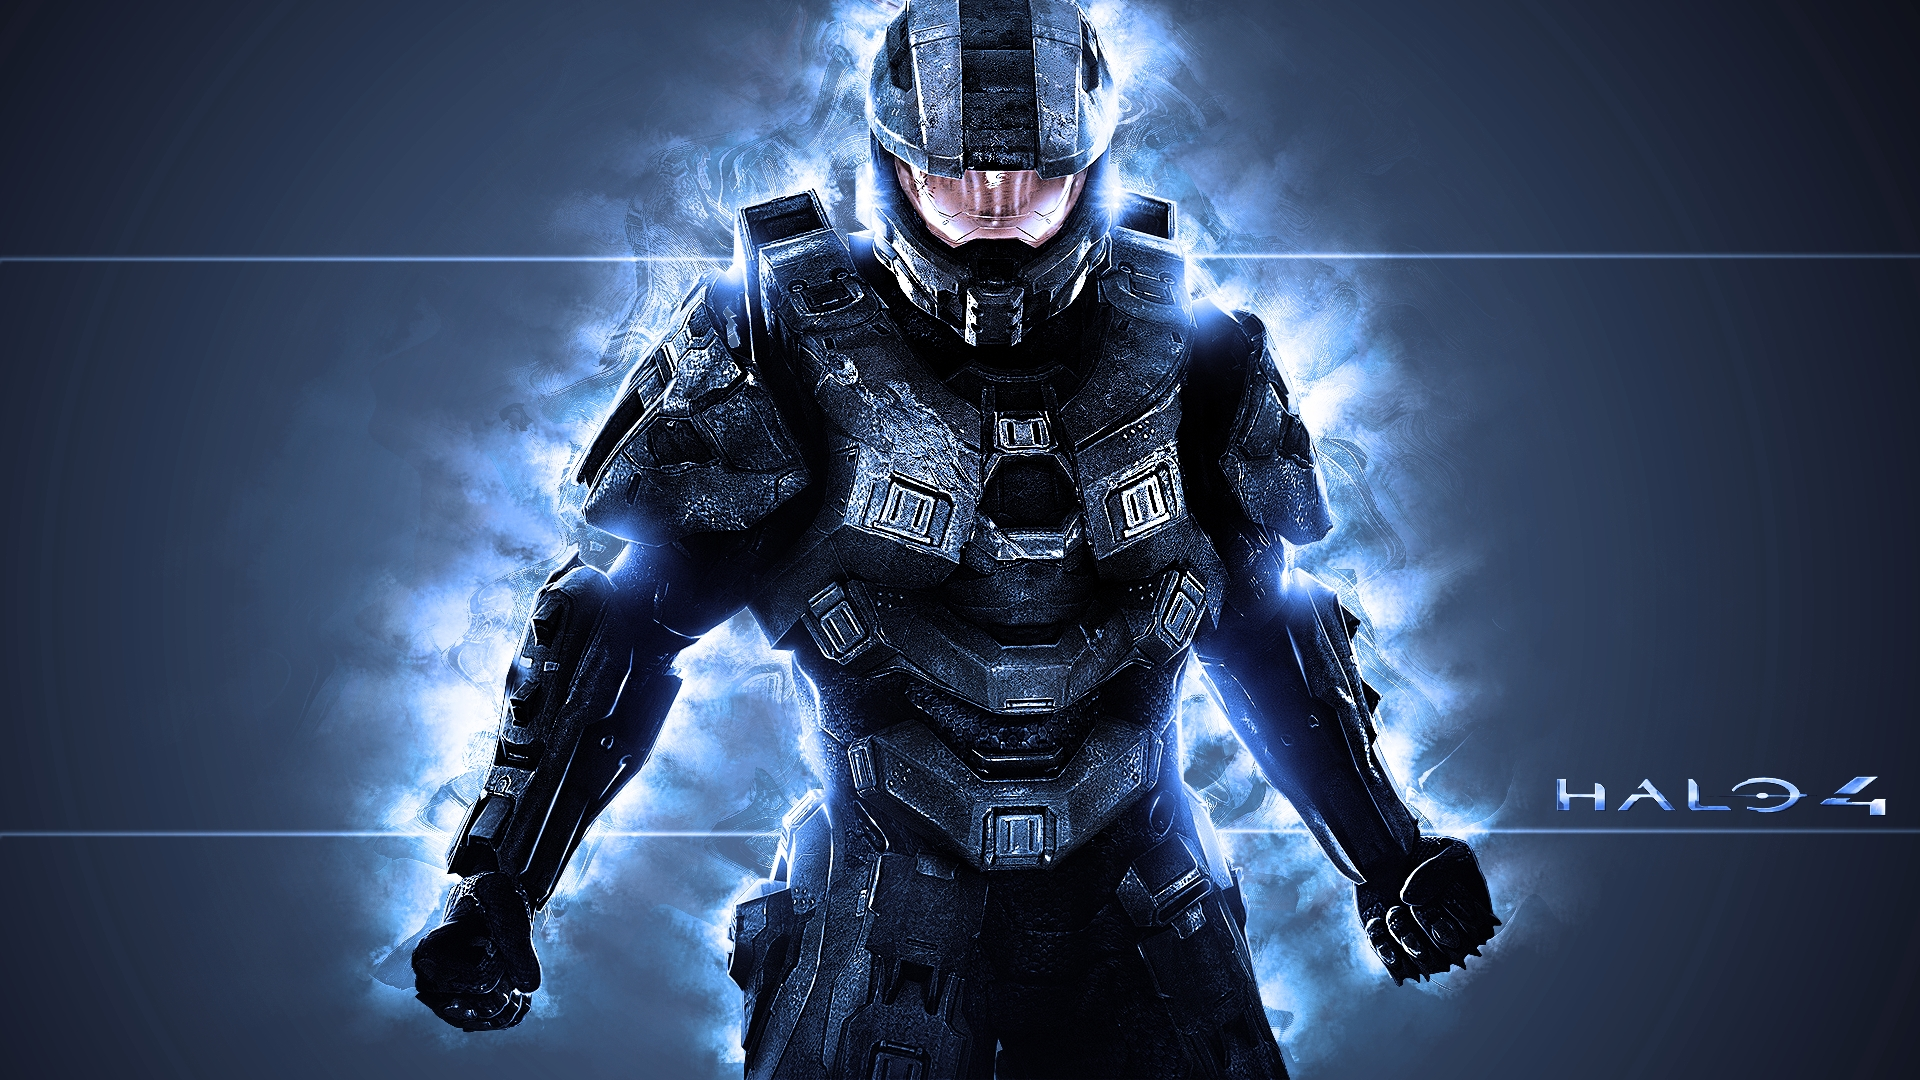 cool-halo-HD-Download-Free-cool-halo-Download-Download-cool-halo-wallpaper-wp3804012